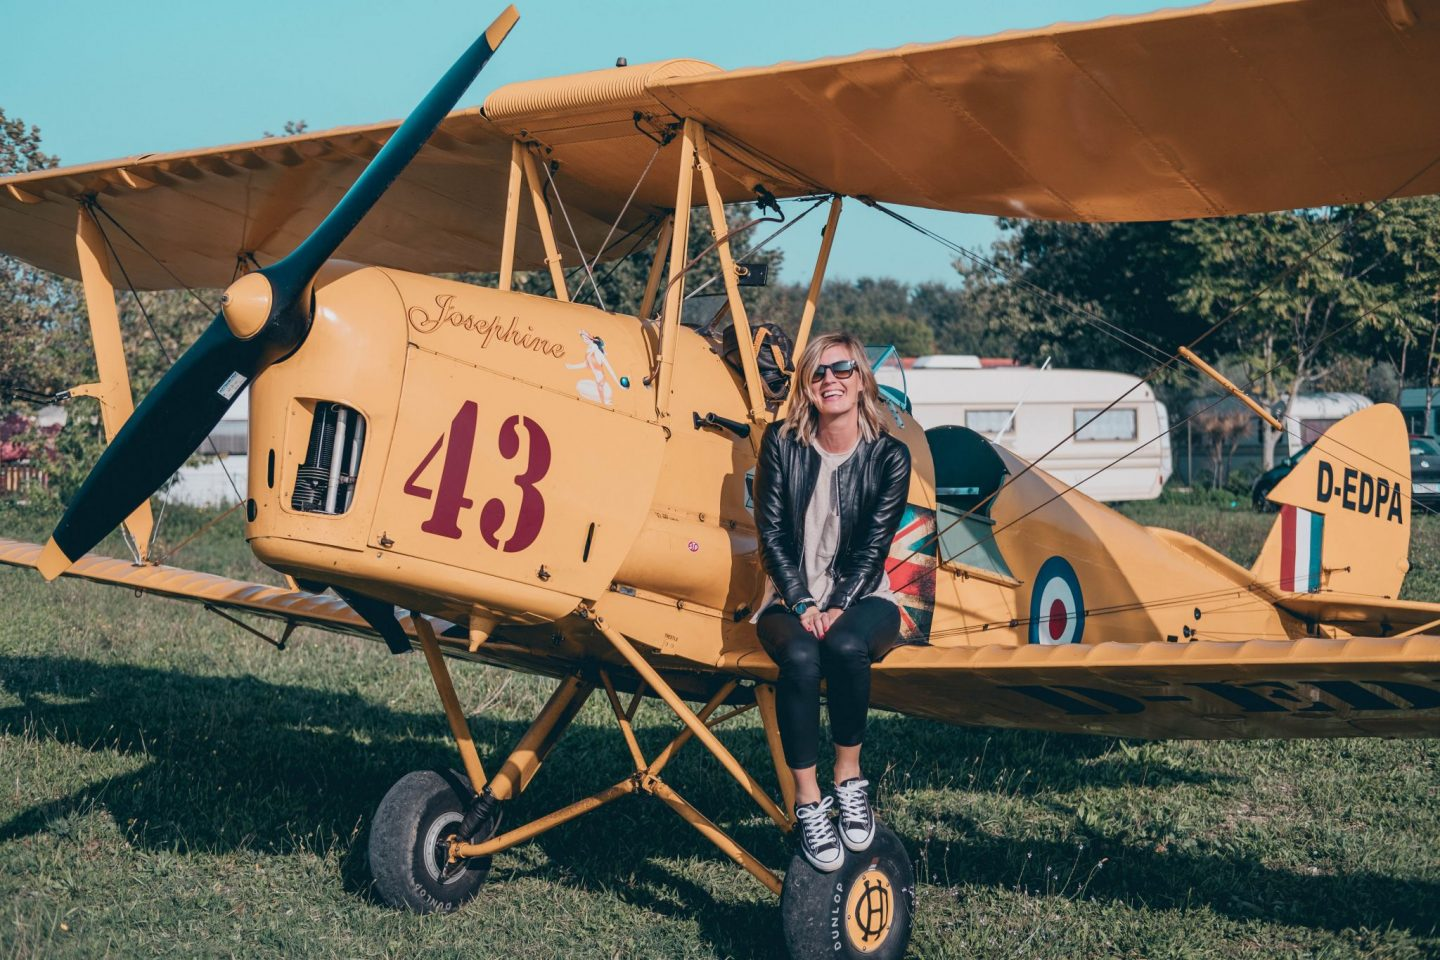 Insanely FUN! Flying a 1930s Vintage Airplane!